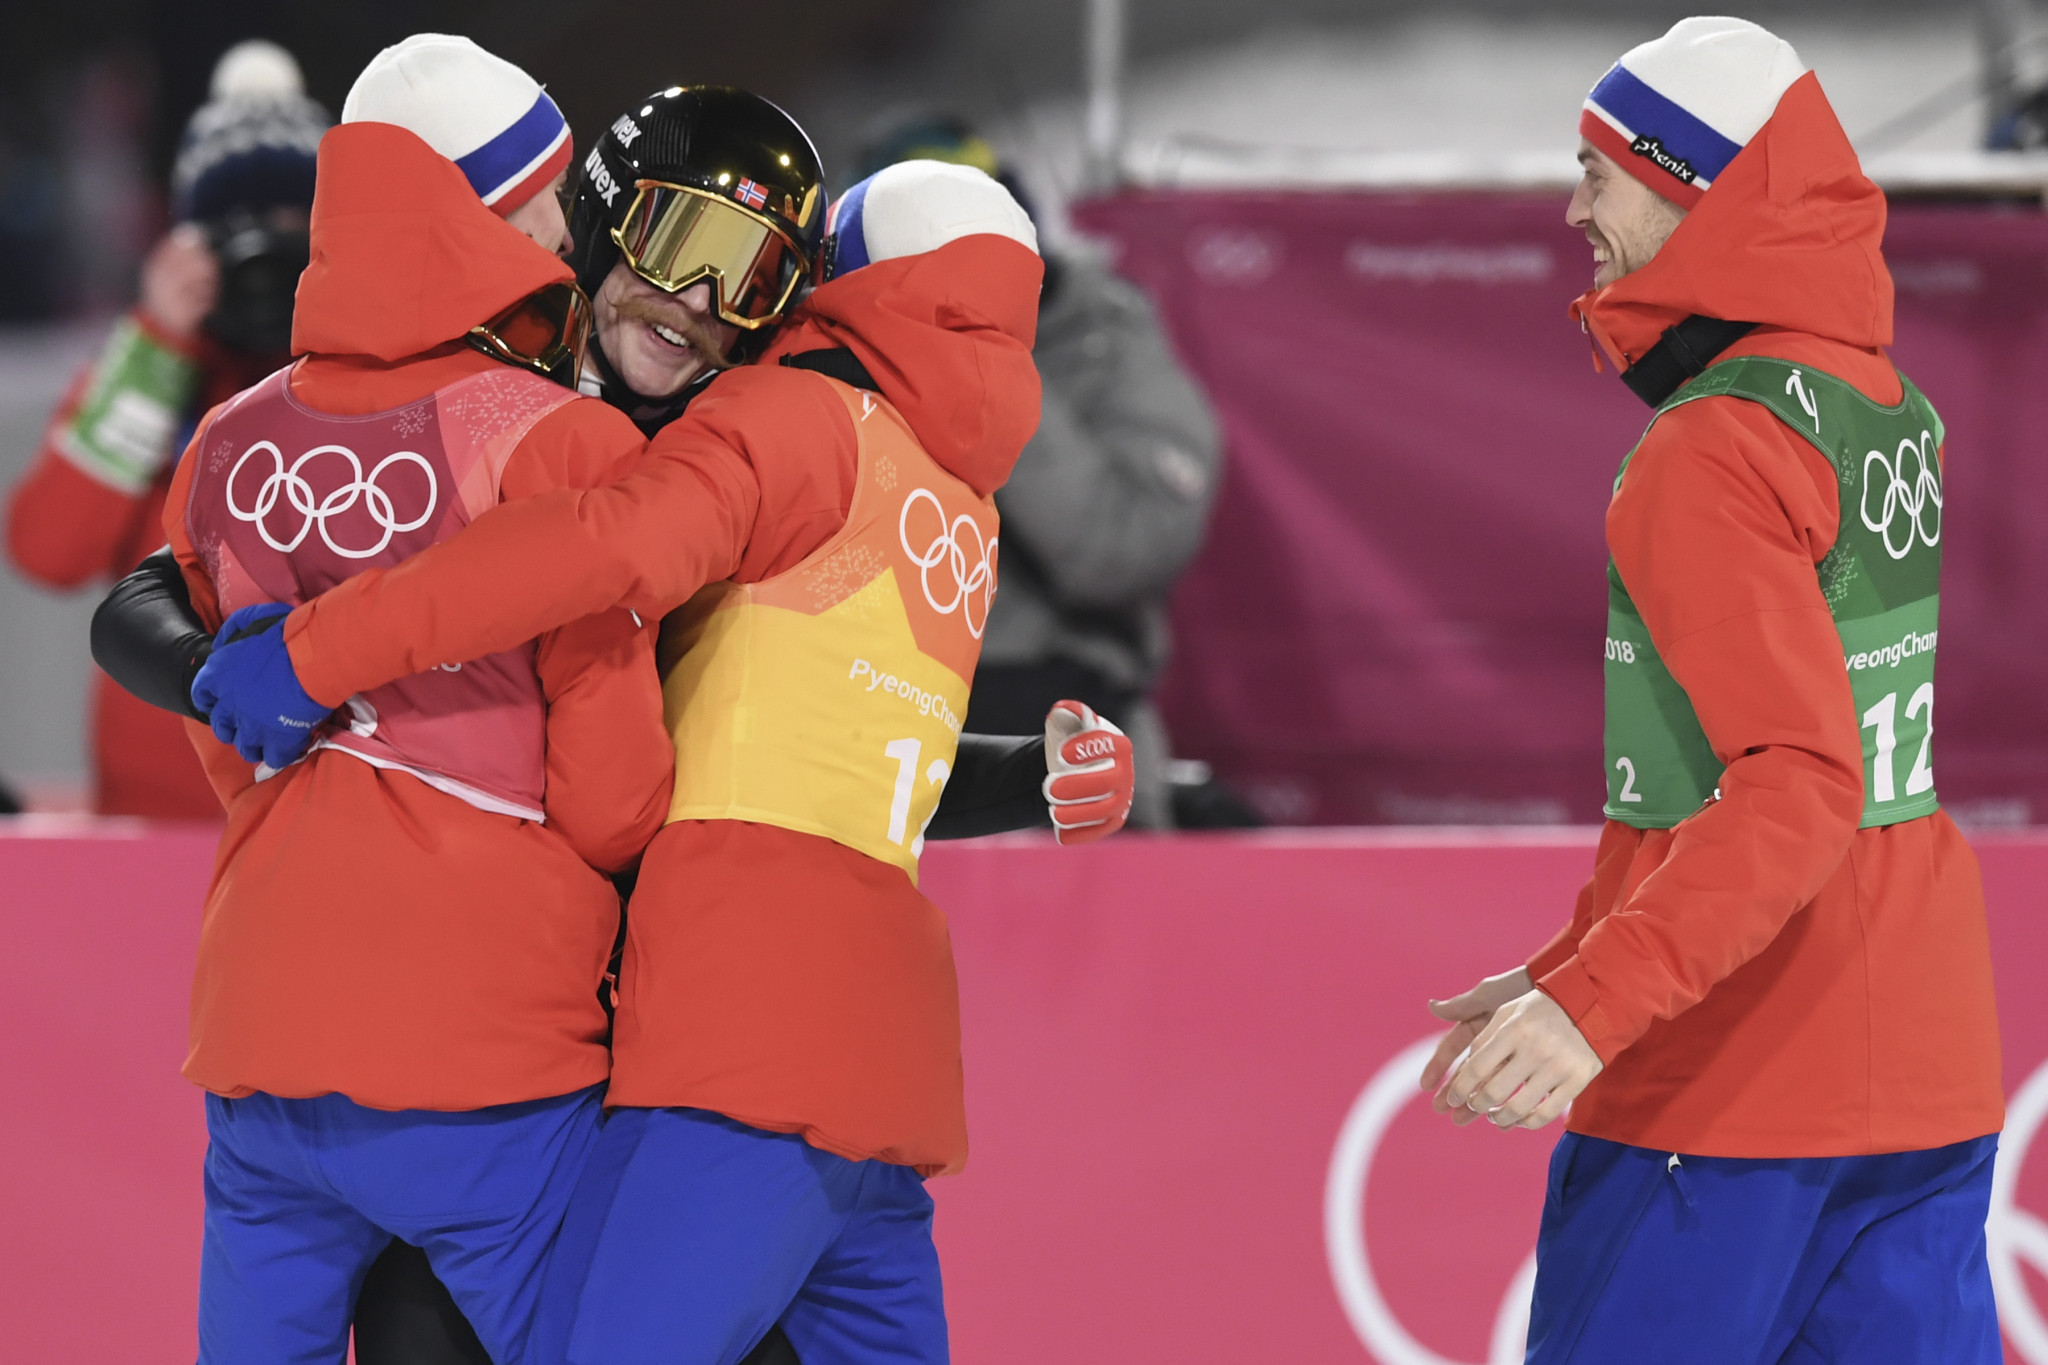 The same Norwegian quartet celebrate team gold at Pyeongchang 2018 last month ©Getty Images